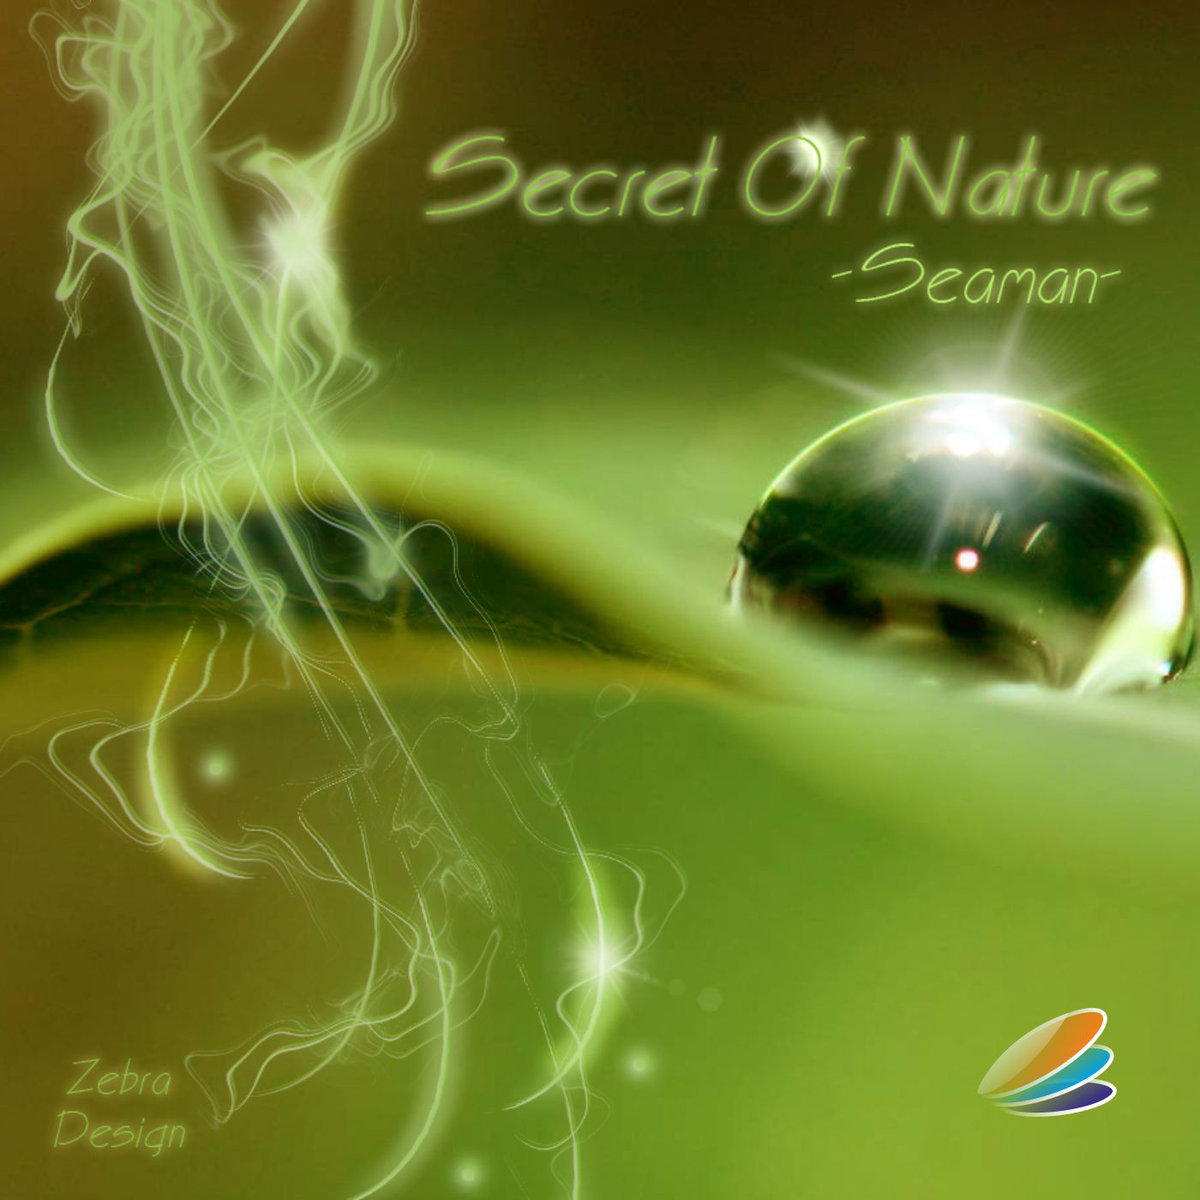 music and nature essay Free meditation papers, essays  the exercises that are meant to develop wisdom involve meditation on the true nature of reality or the conditioned and.